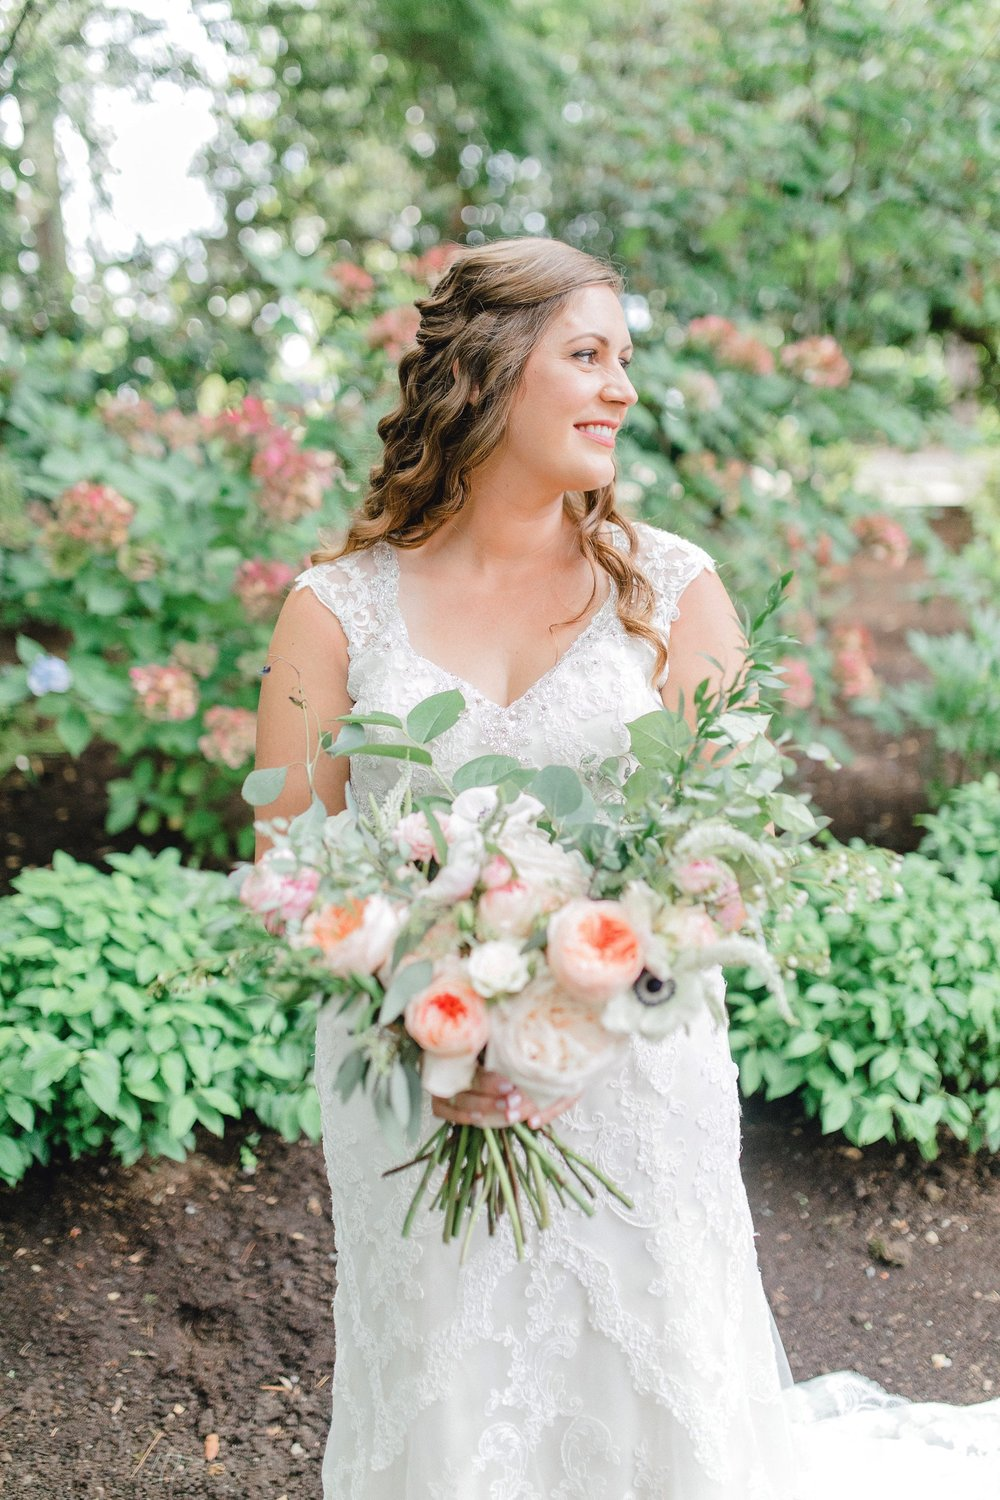 0000000000032_emmarosecompany_katiematt-3117_Photographer_PNW_House_Robinswood_Emma_Light_Company_Airy_Rose_and_Wedding_Seattle.jpg